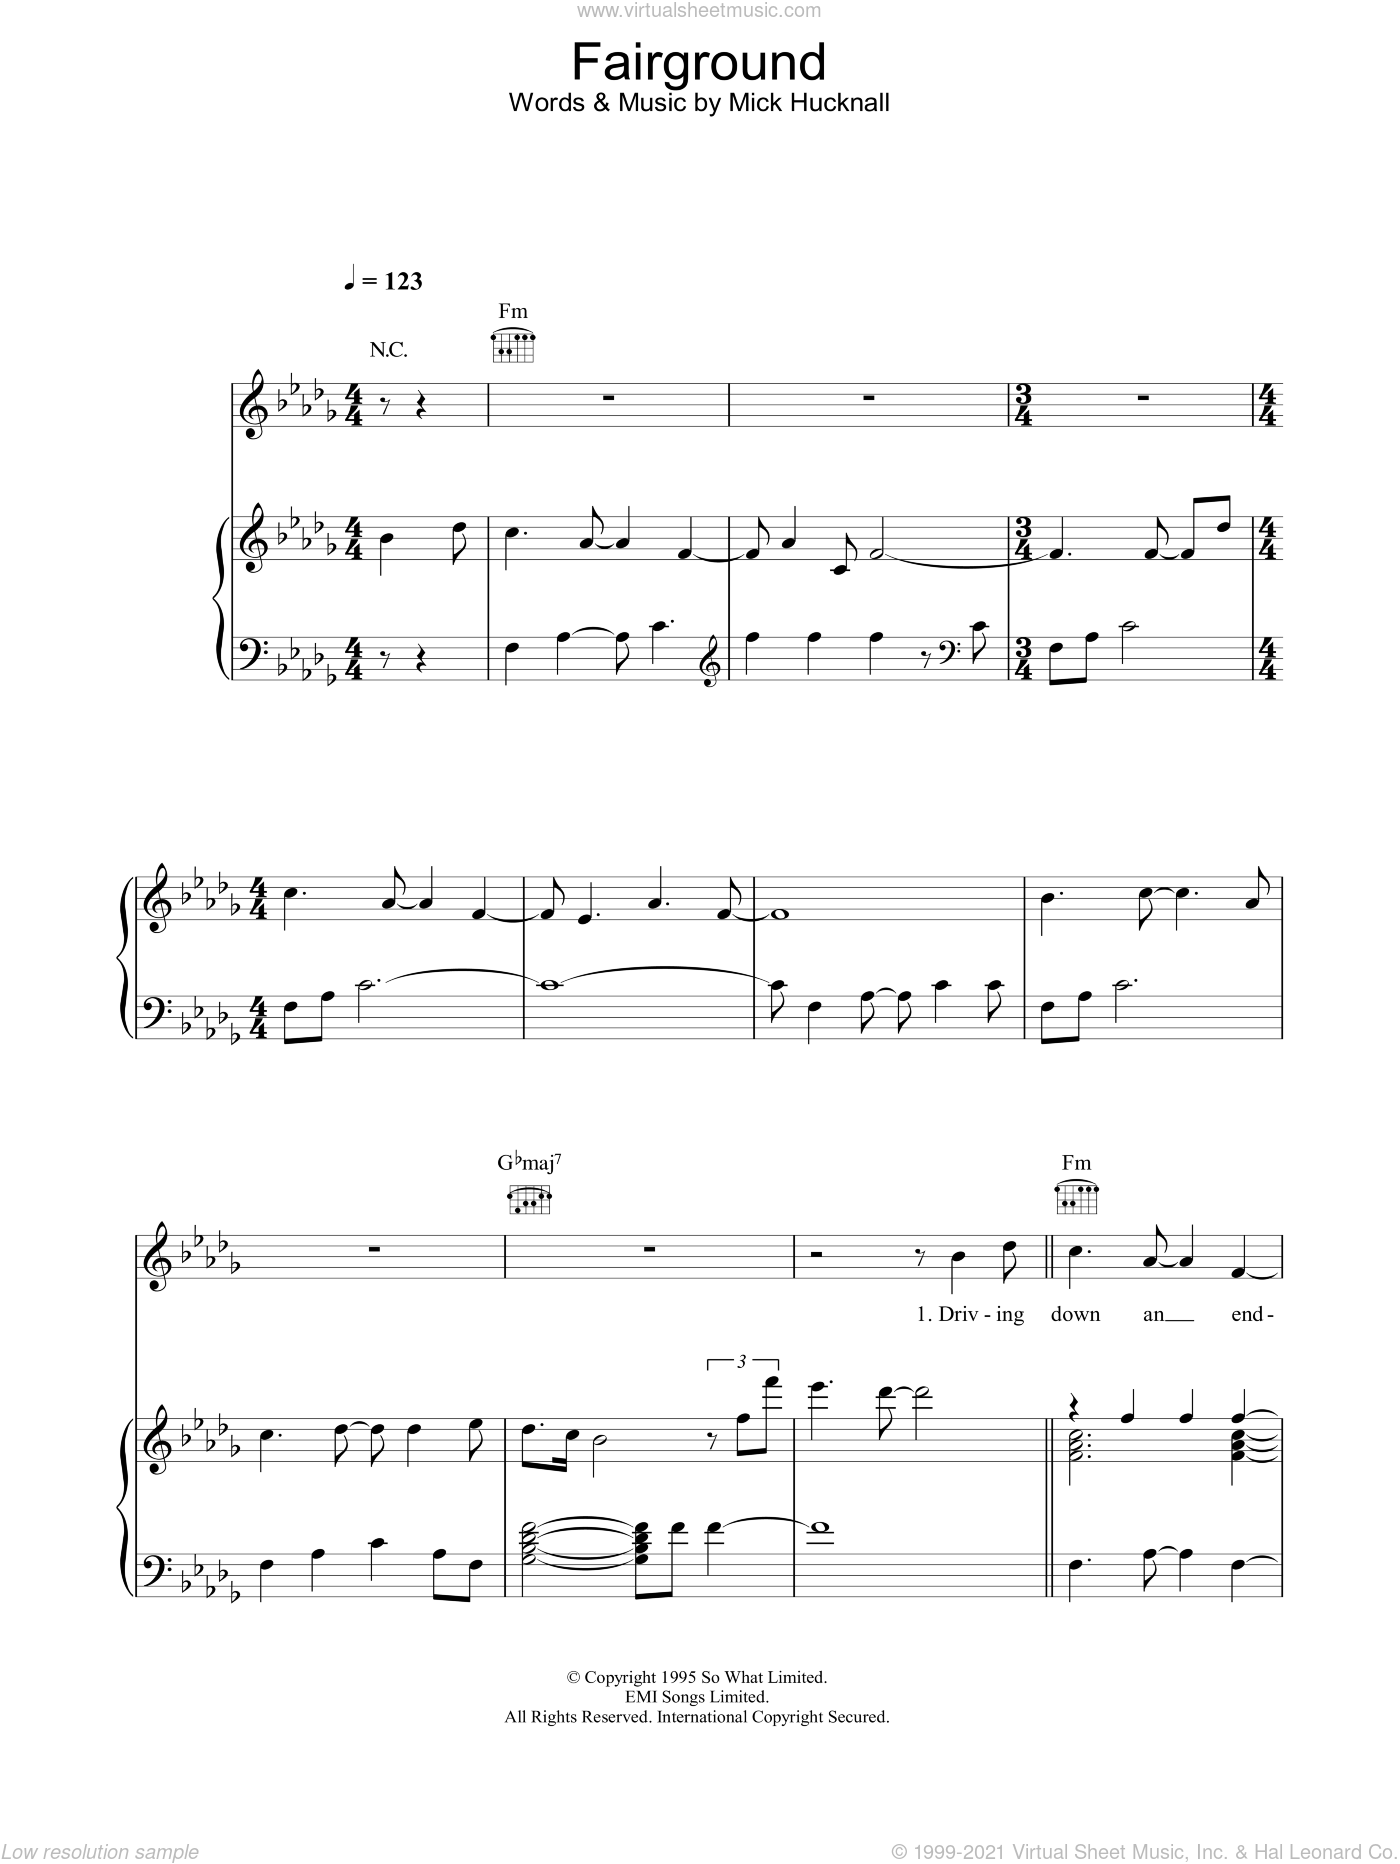 Fairground sheet music for voice, piano or guitar by Mick Hucknall